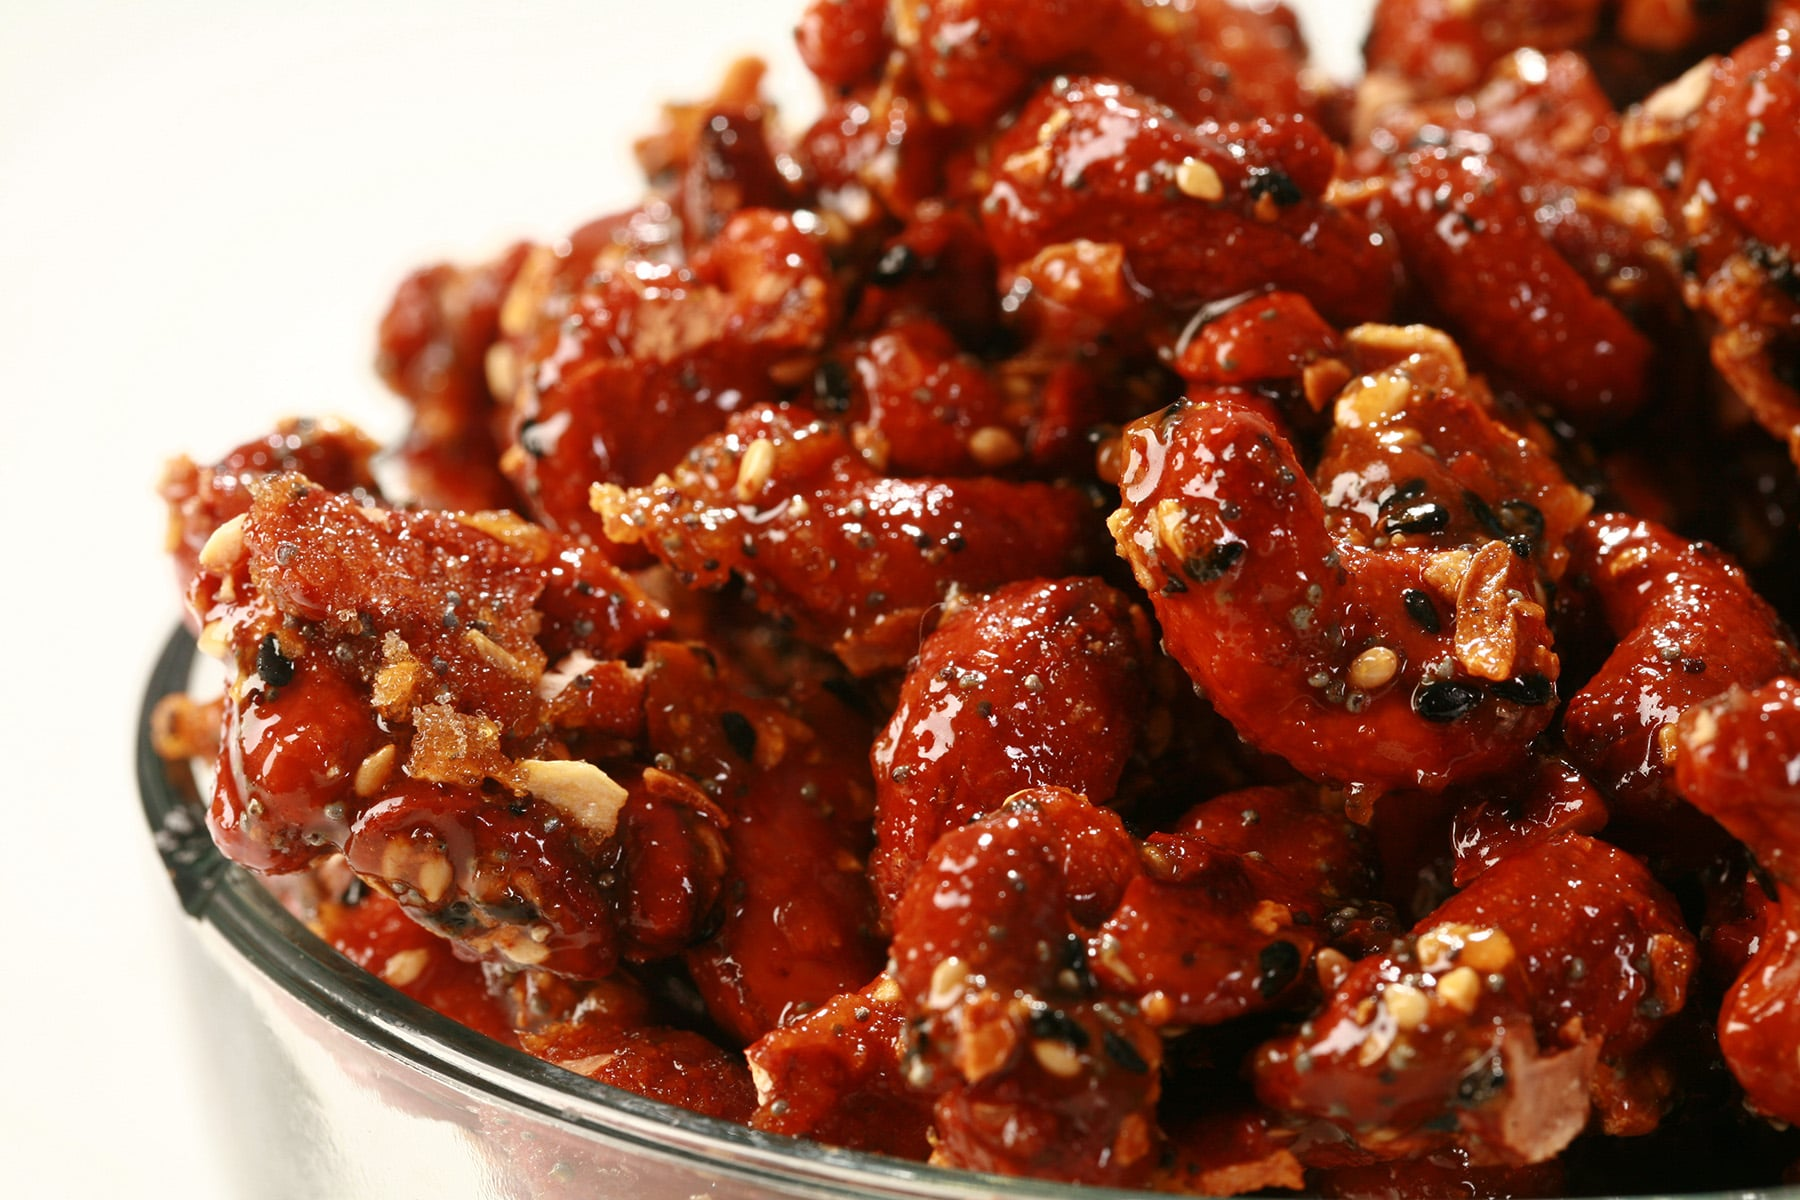 A close up view of Everything Honey Glazed Cashews in a glass bowl. They are crusted with a deep reddish brown caramel, and coated with bagel seasoning.